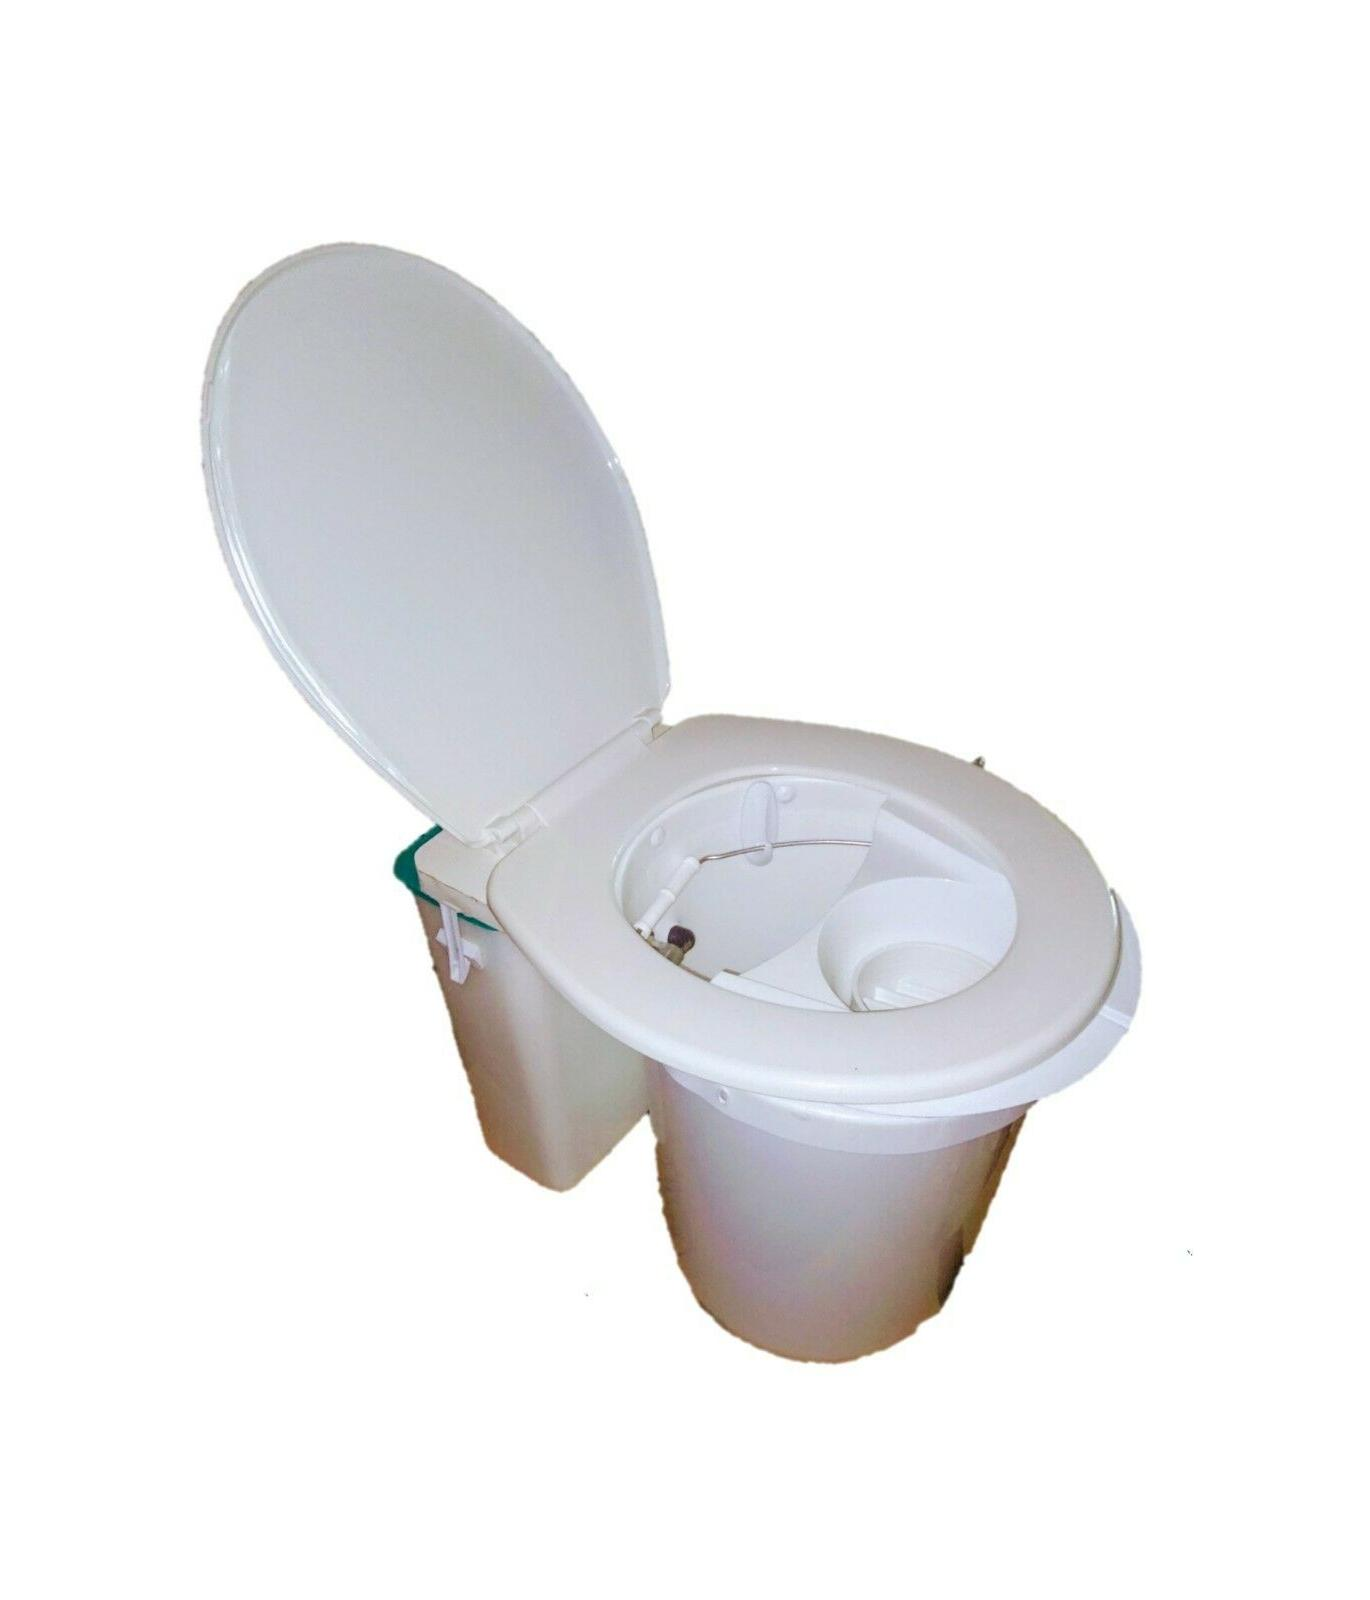 waterless portable compost toilet rv camping